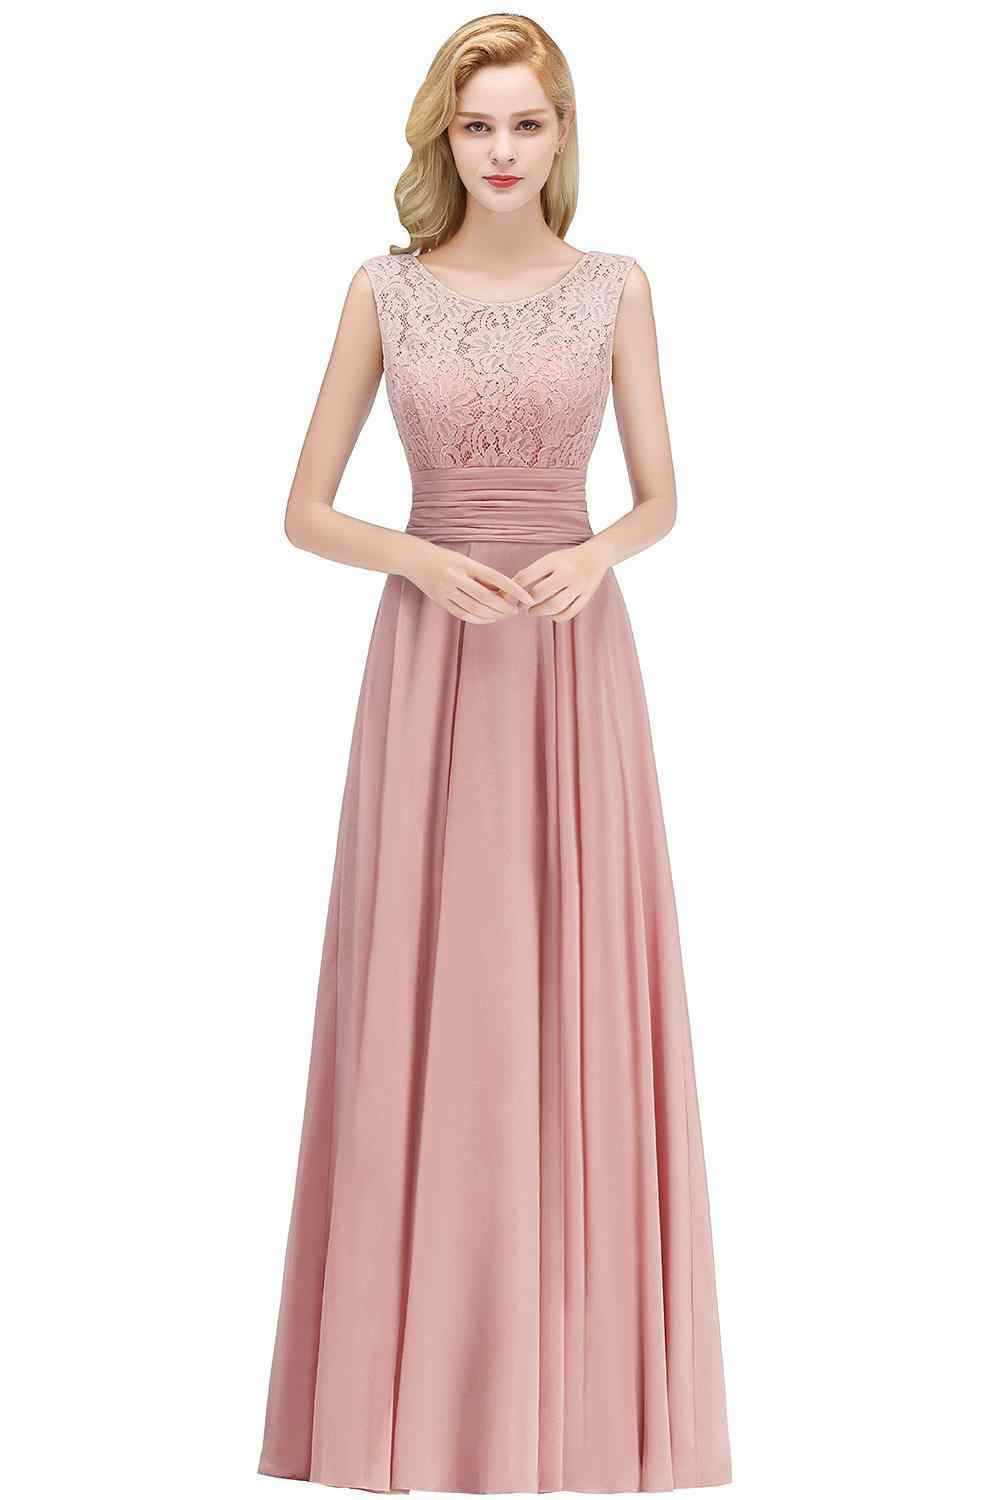 4725200d02517 Detail Feedback Questions about Elegant Lace Long Bridesmaid Dresses 2019 Sleeveless  Chiffon Ruched Wedding Guest Maid Of Honor Party Dresses on ...